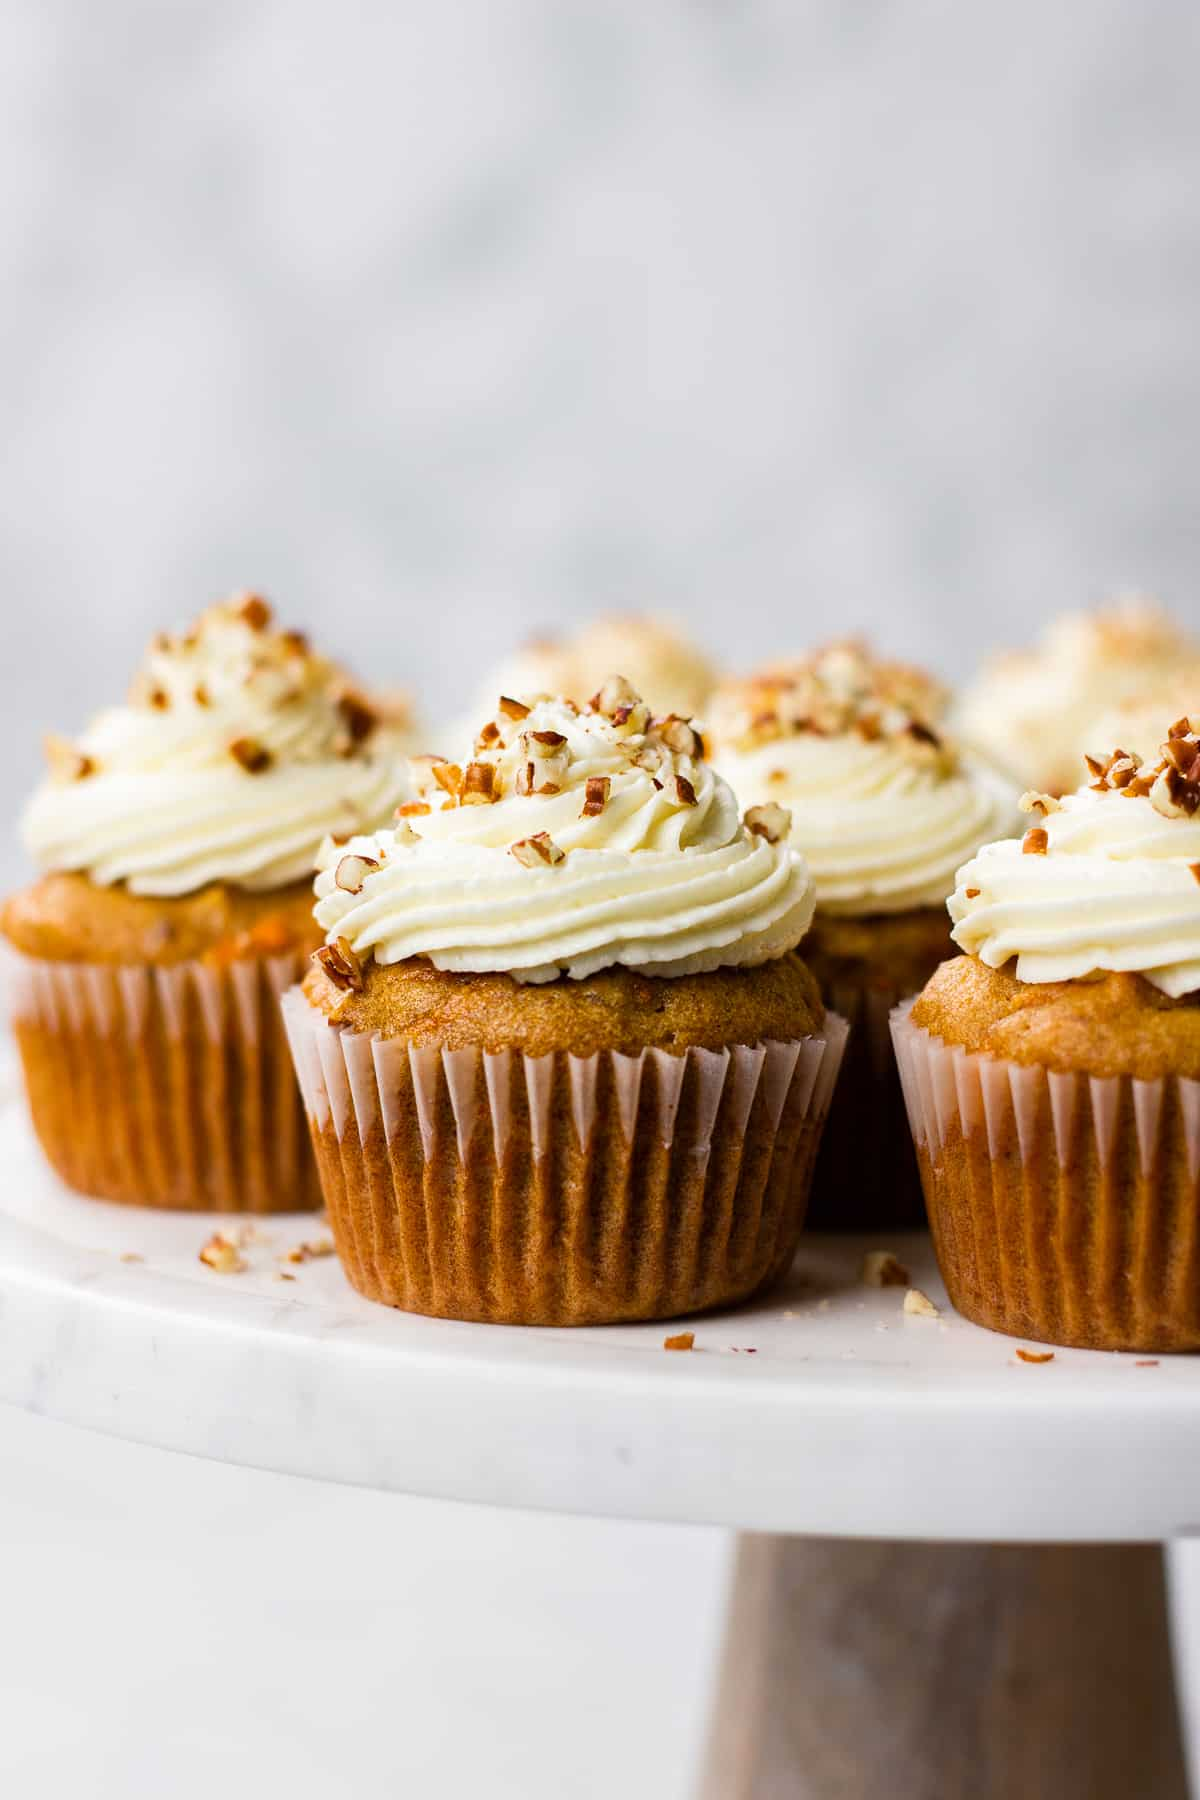 Carrot Cake Cupcakes topped with Cream Cheese Frosting on a serving platter.